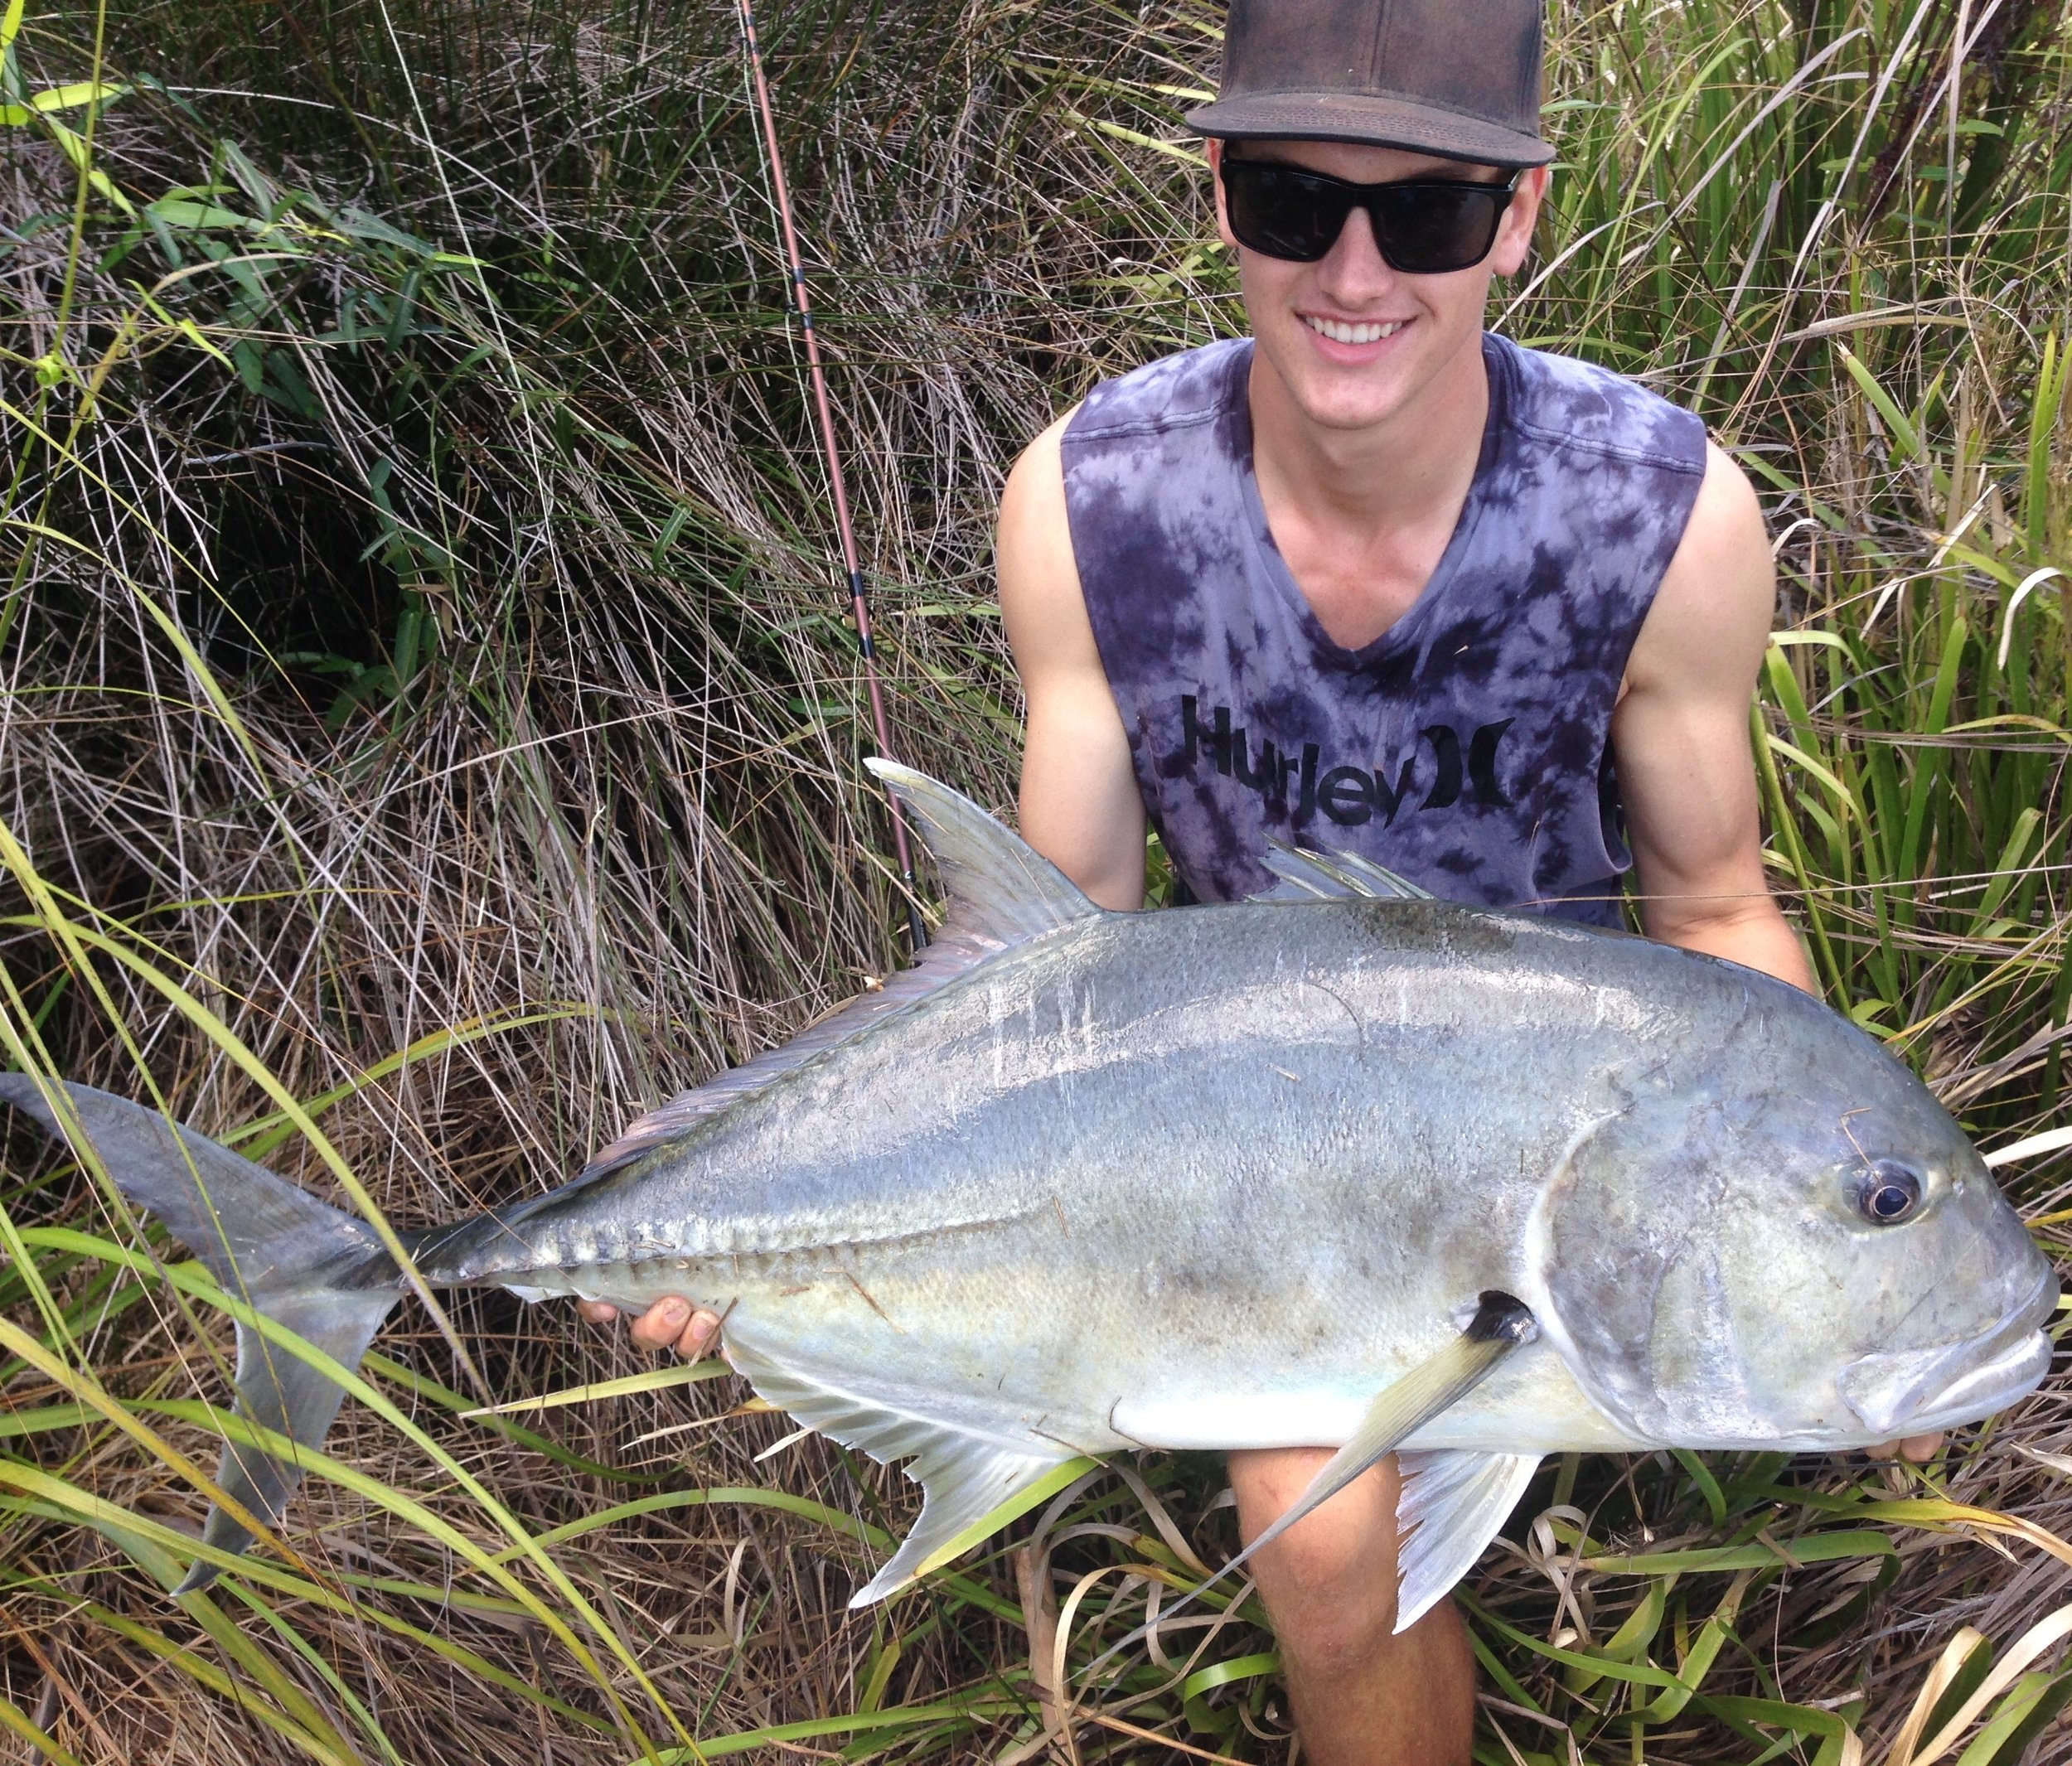 Jack Witek with a jaw dropping Giant Trevally from the estuary! Read the full article and see all the uncut video clips form this once in a lifetime experience in our SCF MEMBERS ONLY section. The fish was released safely.